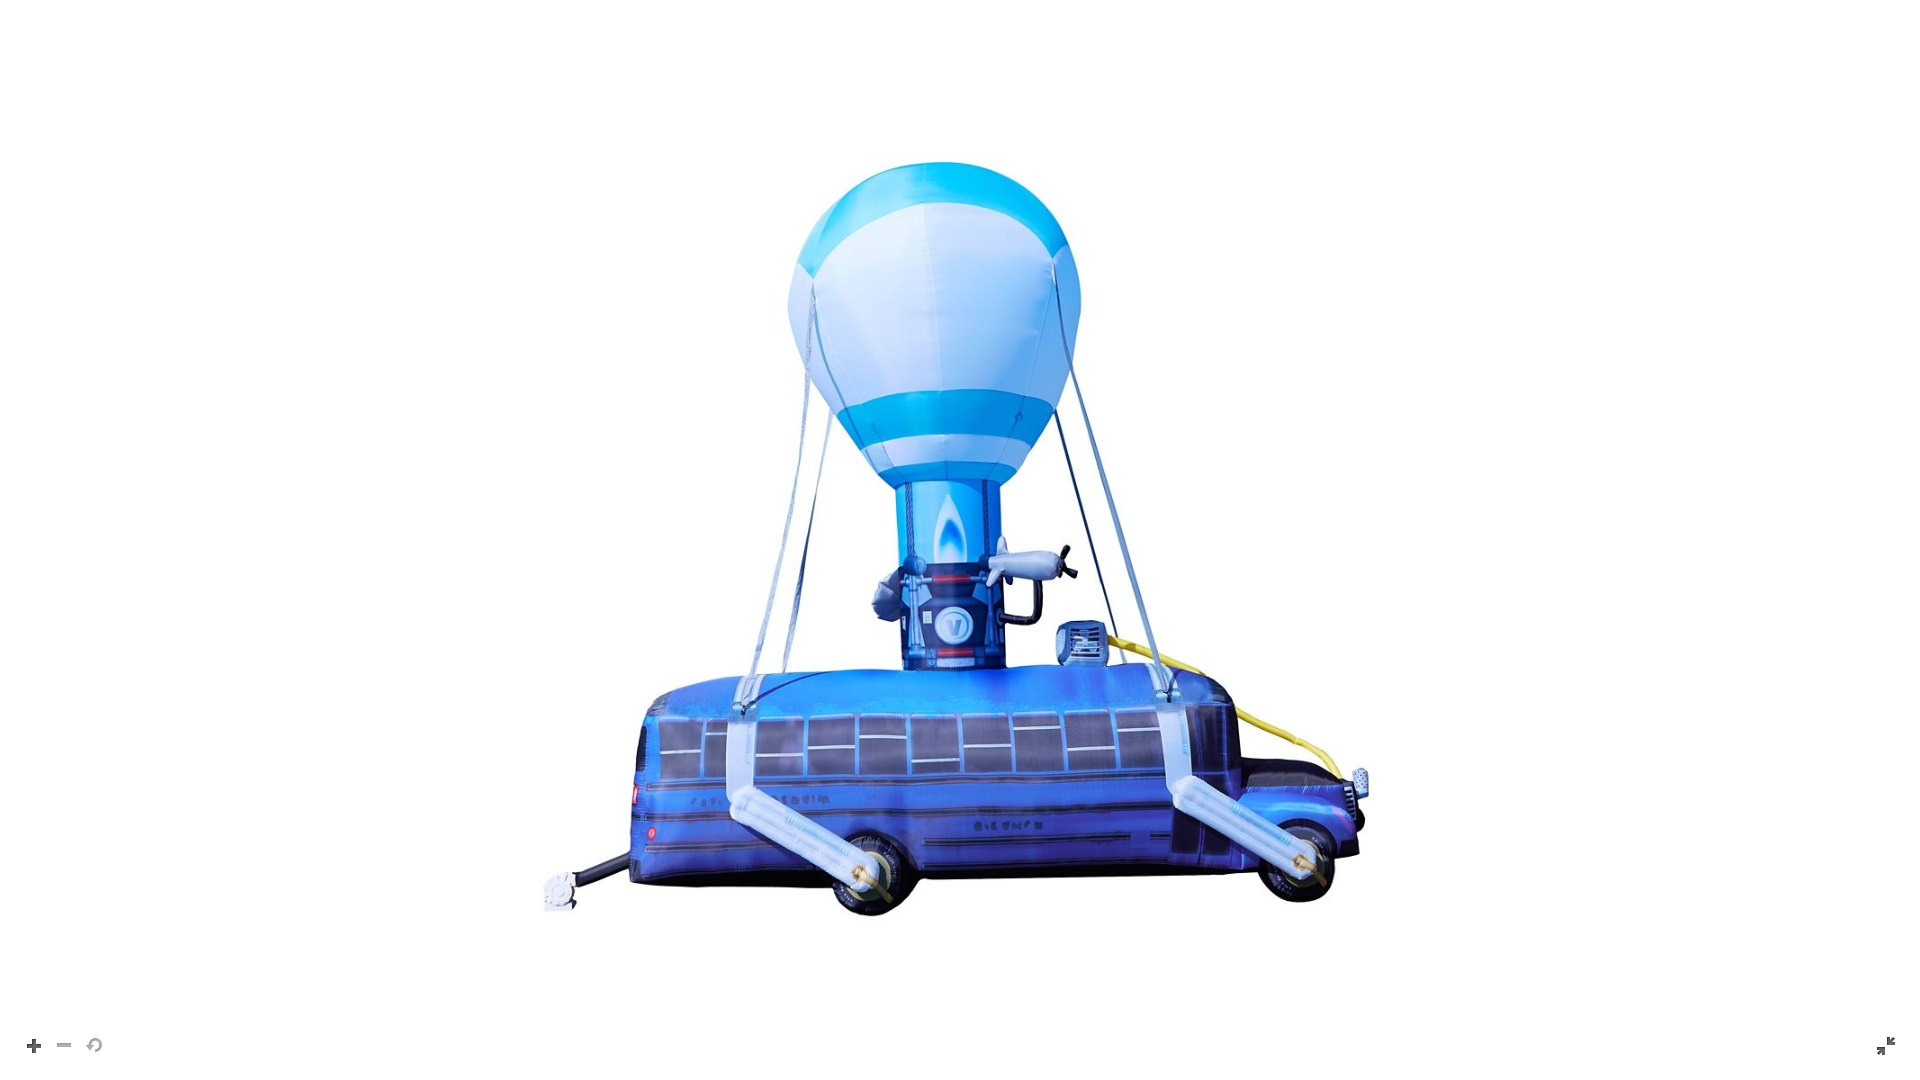 You Can Buy A 17 Feet Tall Inflatable Fortnite Battle Bus For 500